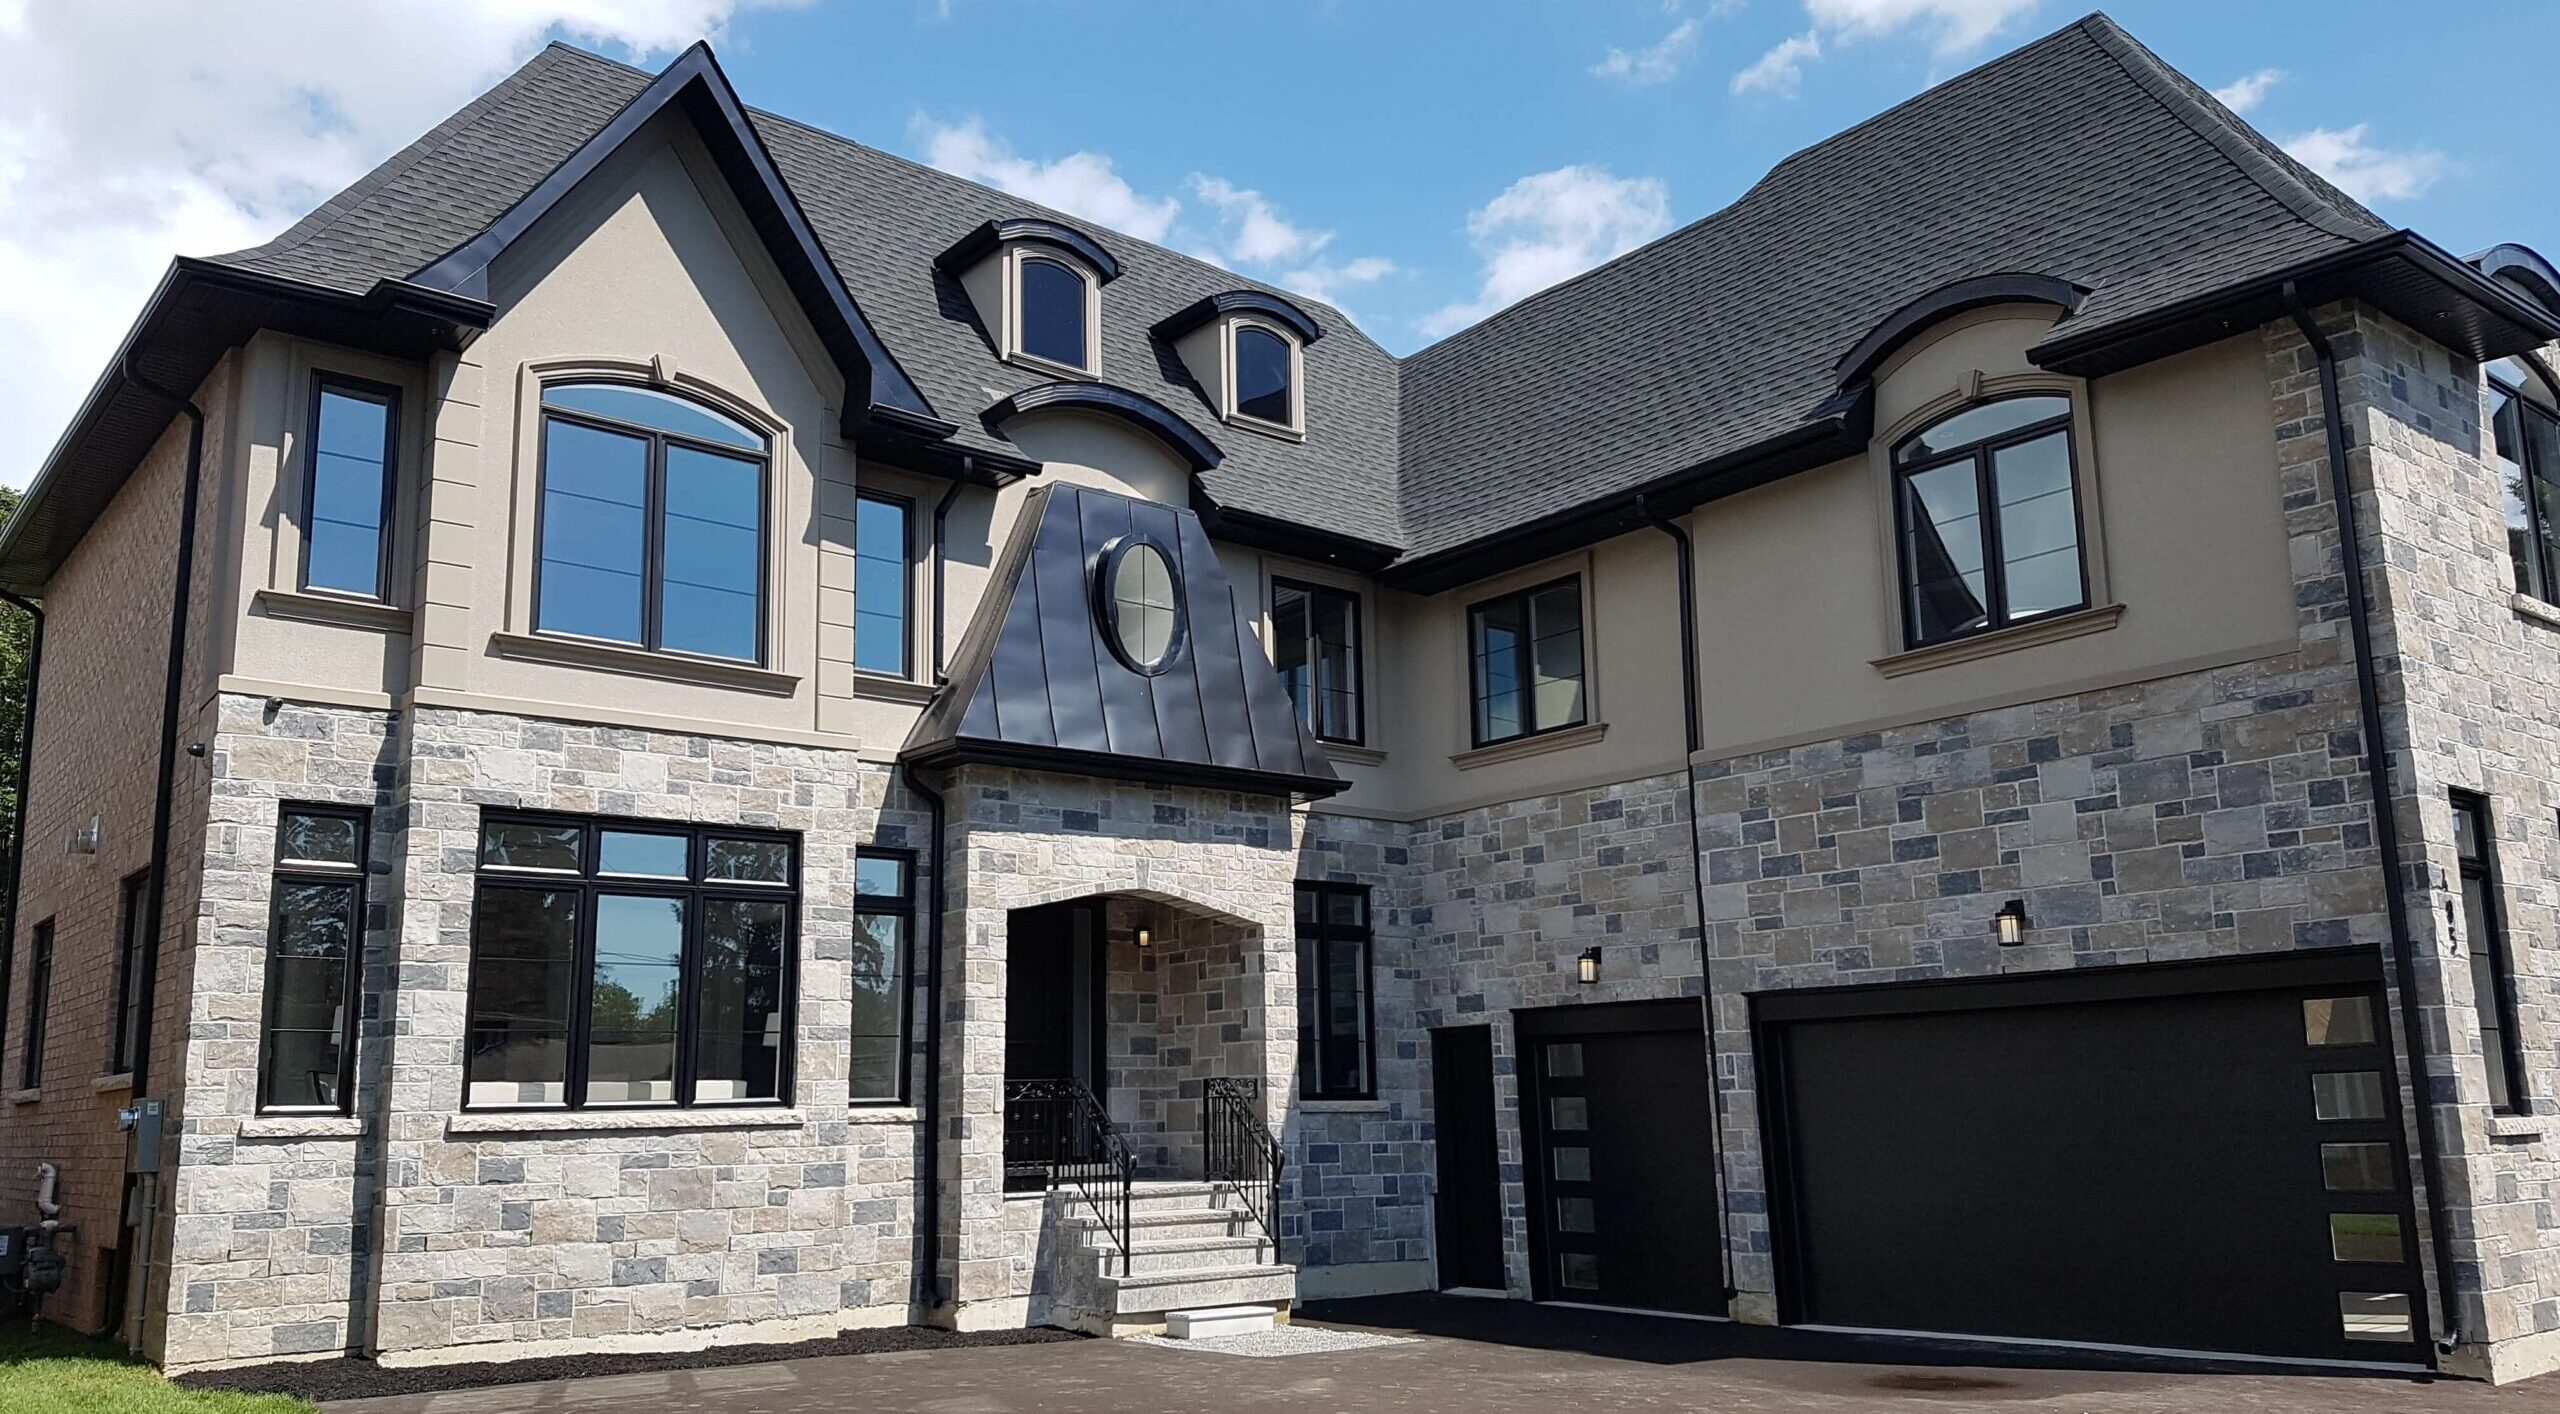 Build Custom Homes In Pickering - AK Design & Build